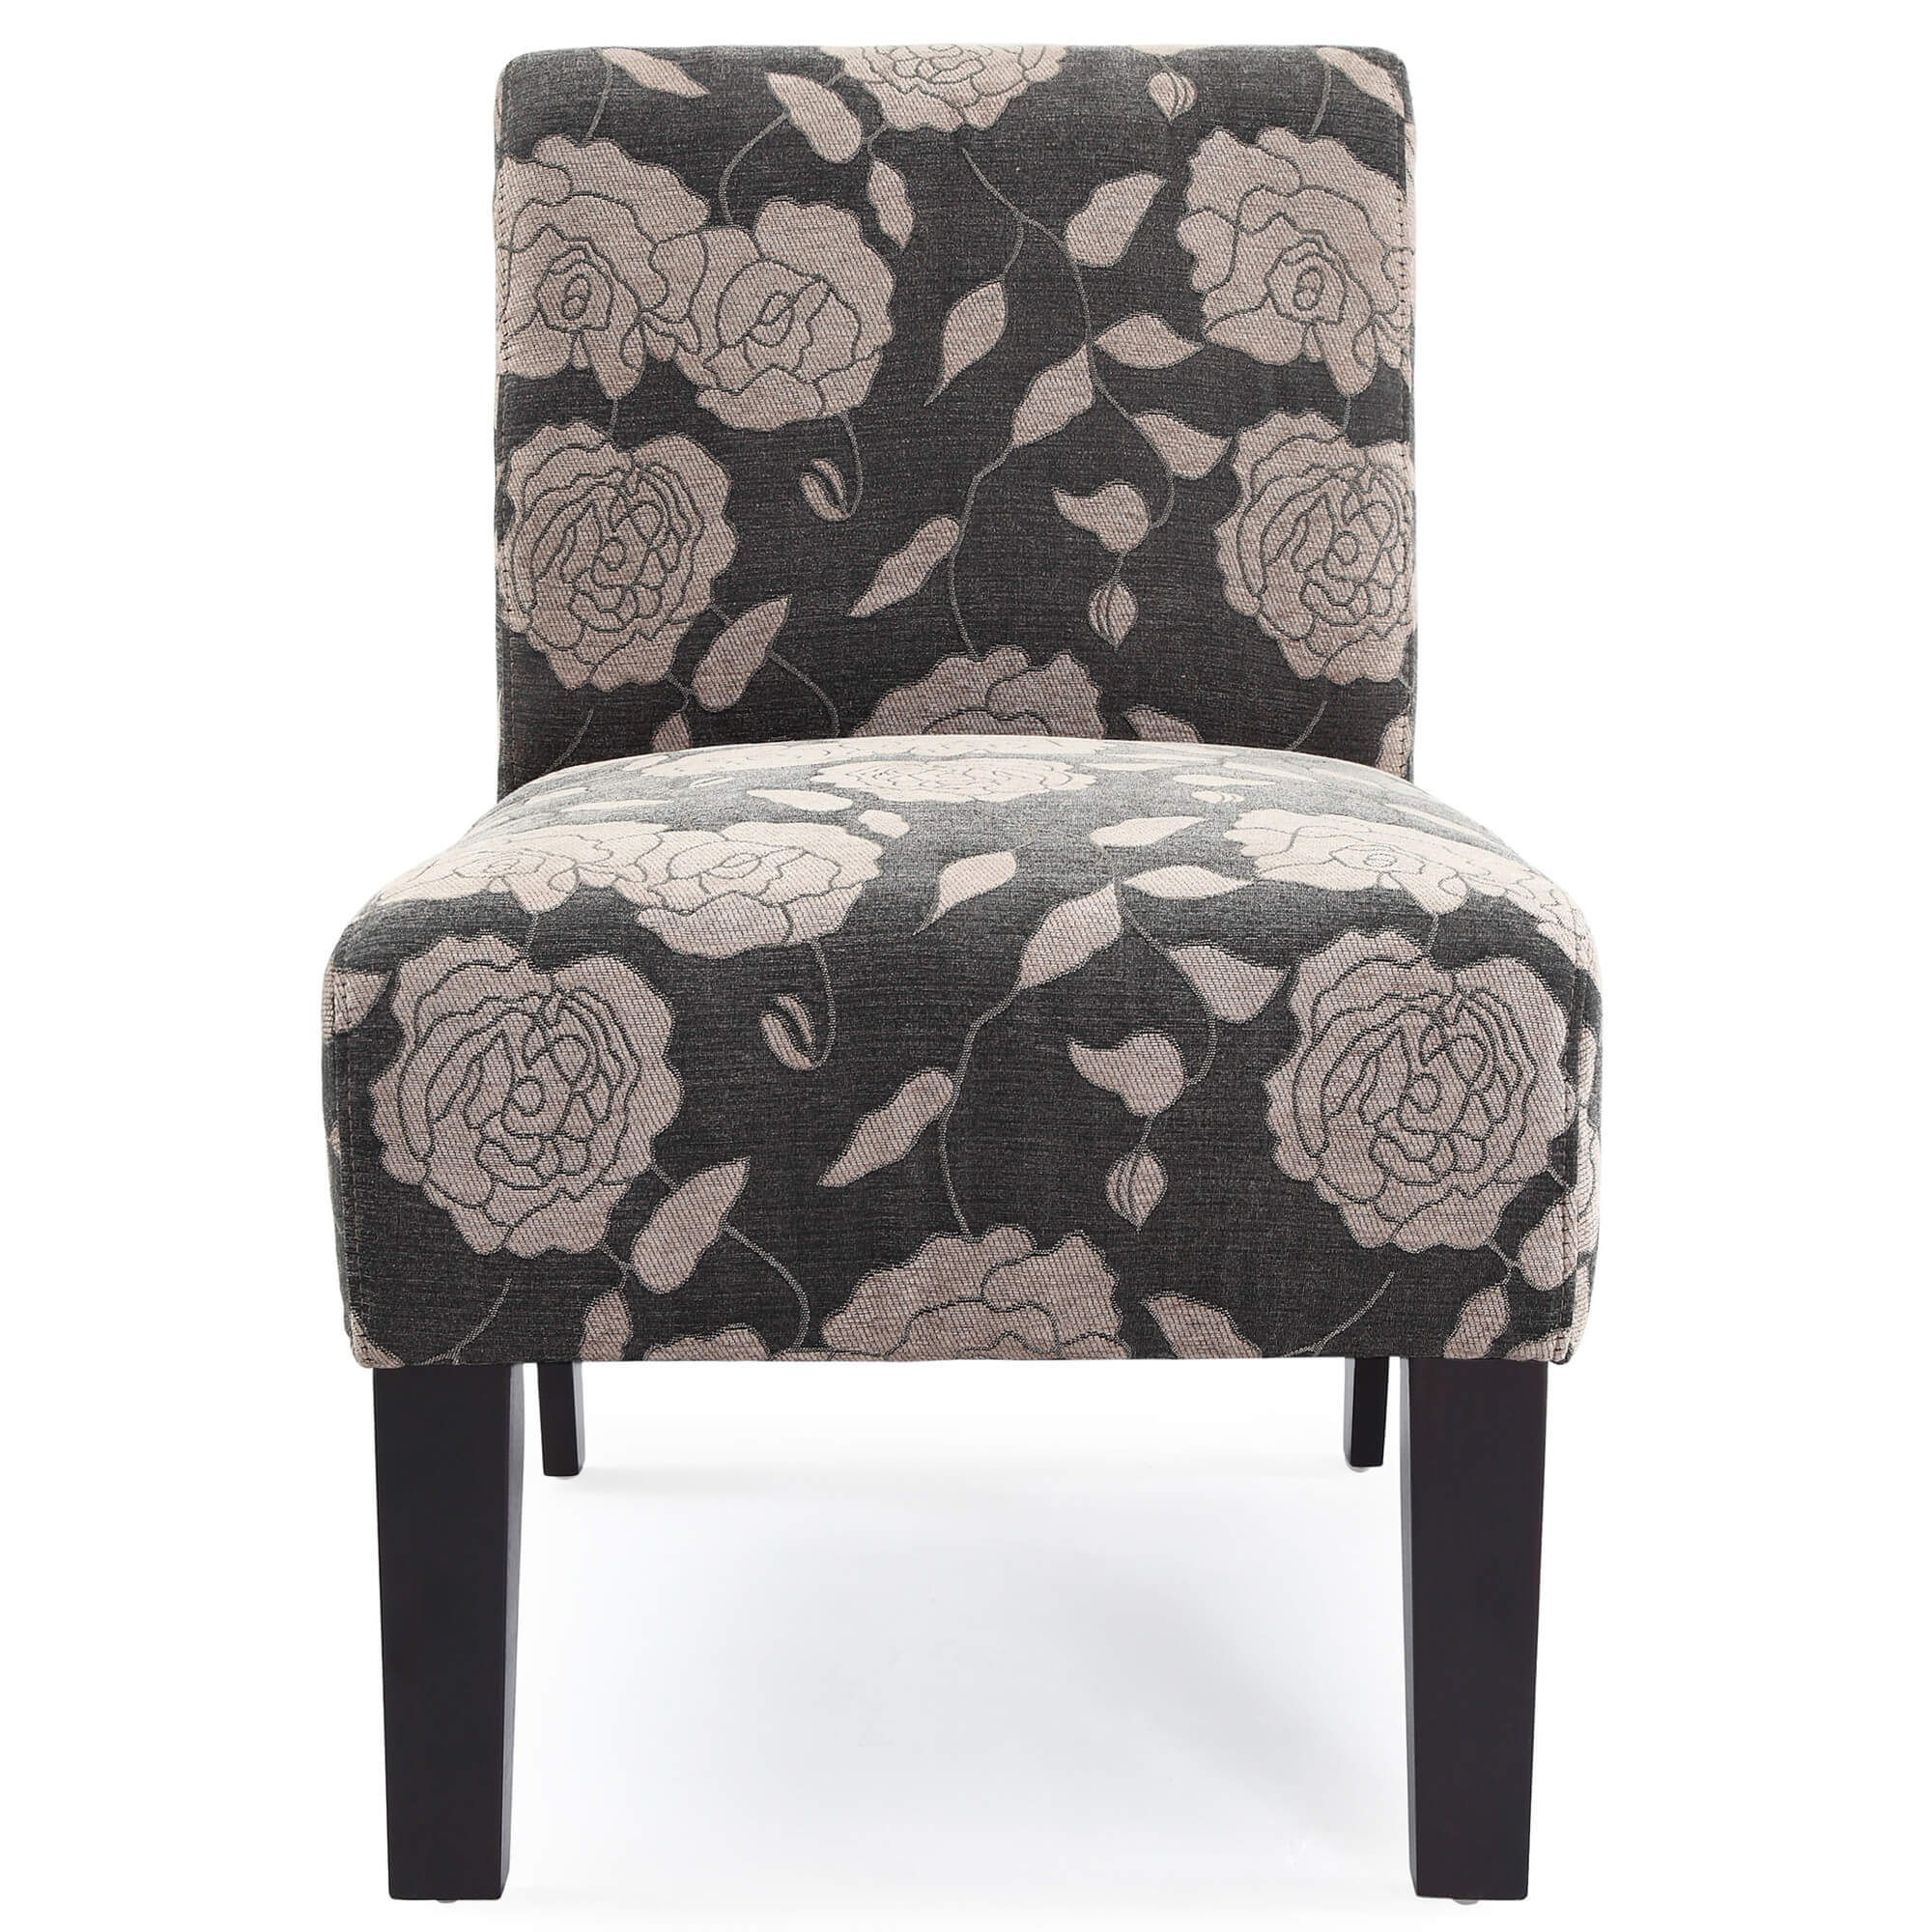 Accent Chairs Under 100 | Walmart Lounge Chair | Tufted Chair